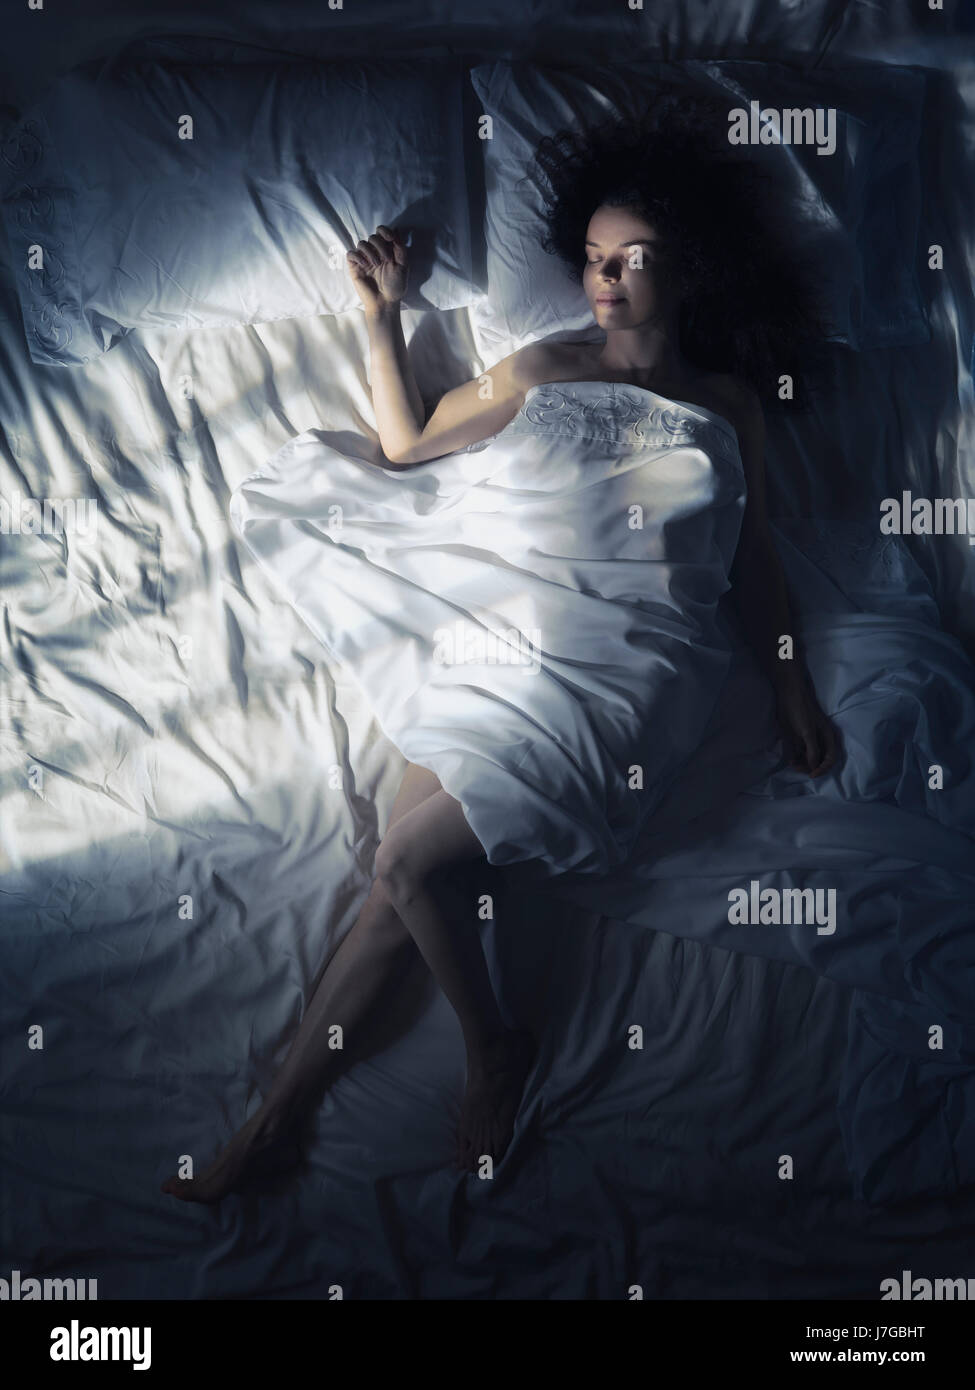 Young Woman Sleeping Alone In Bed At Night Dark Bedroom Lit By Moonlight